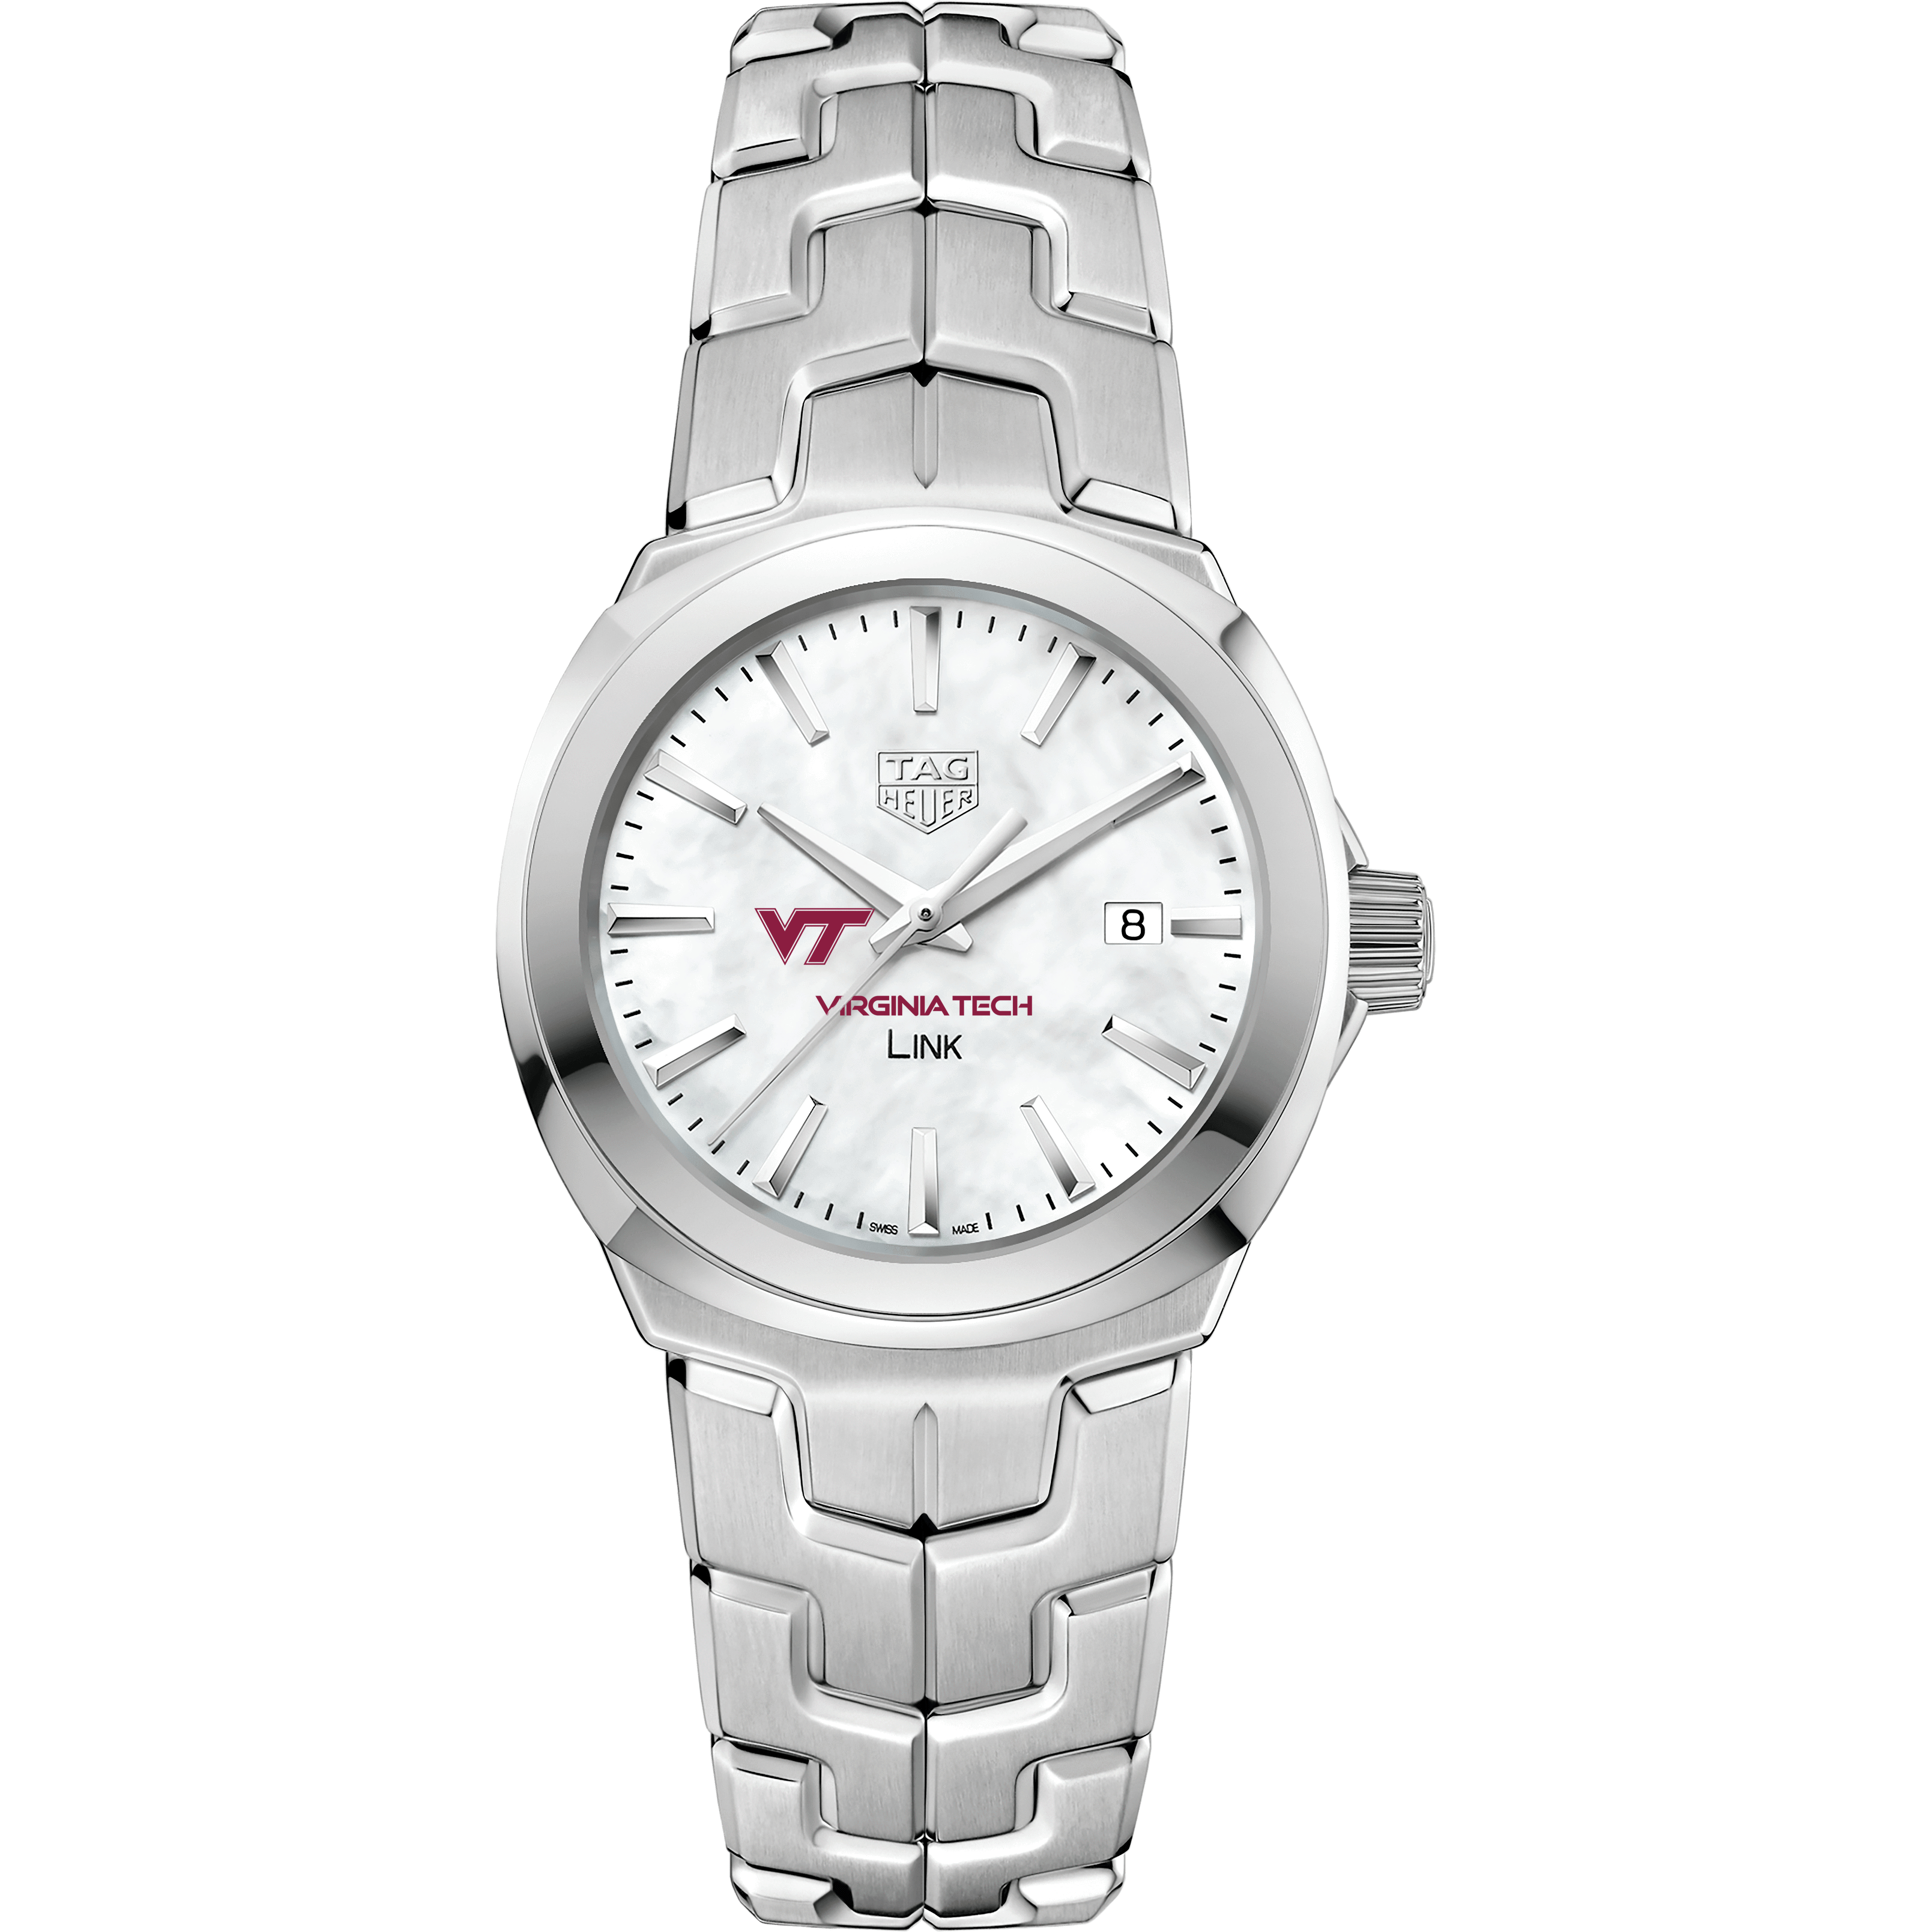 Virginia Tech TAG Heuer LINK for Women - Image 2